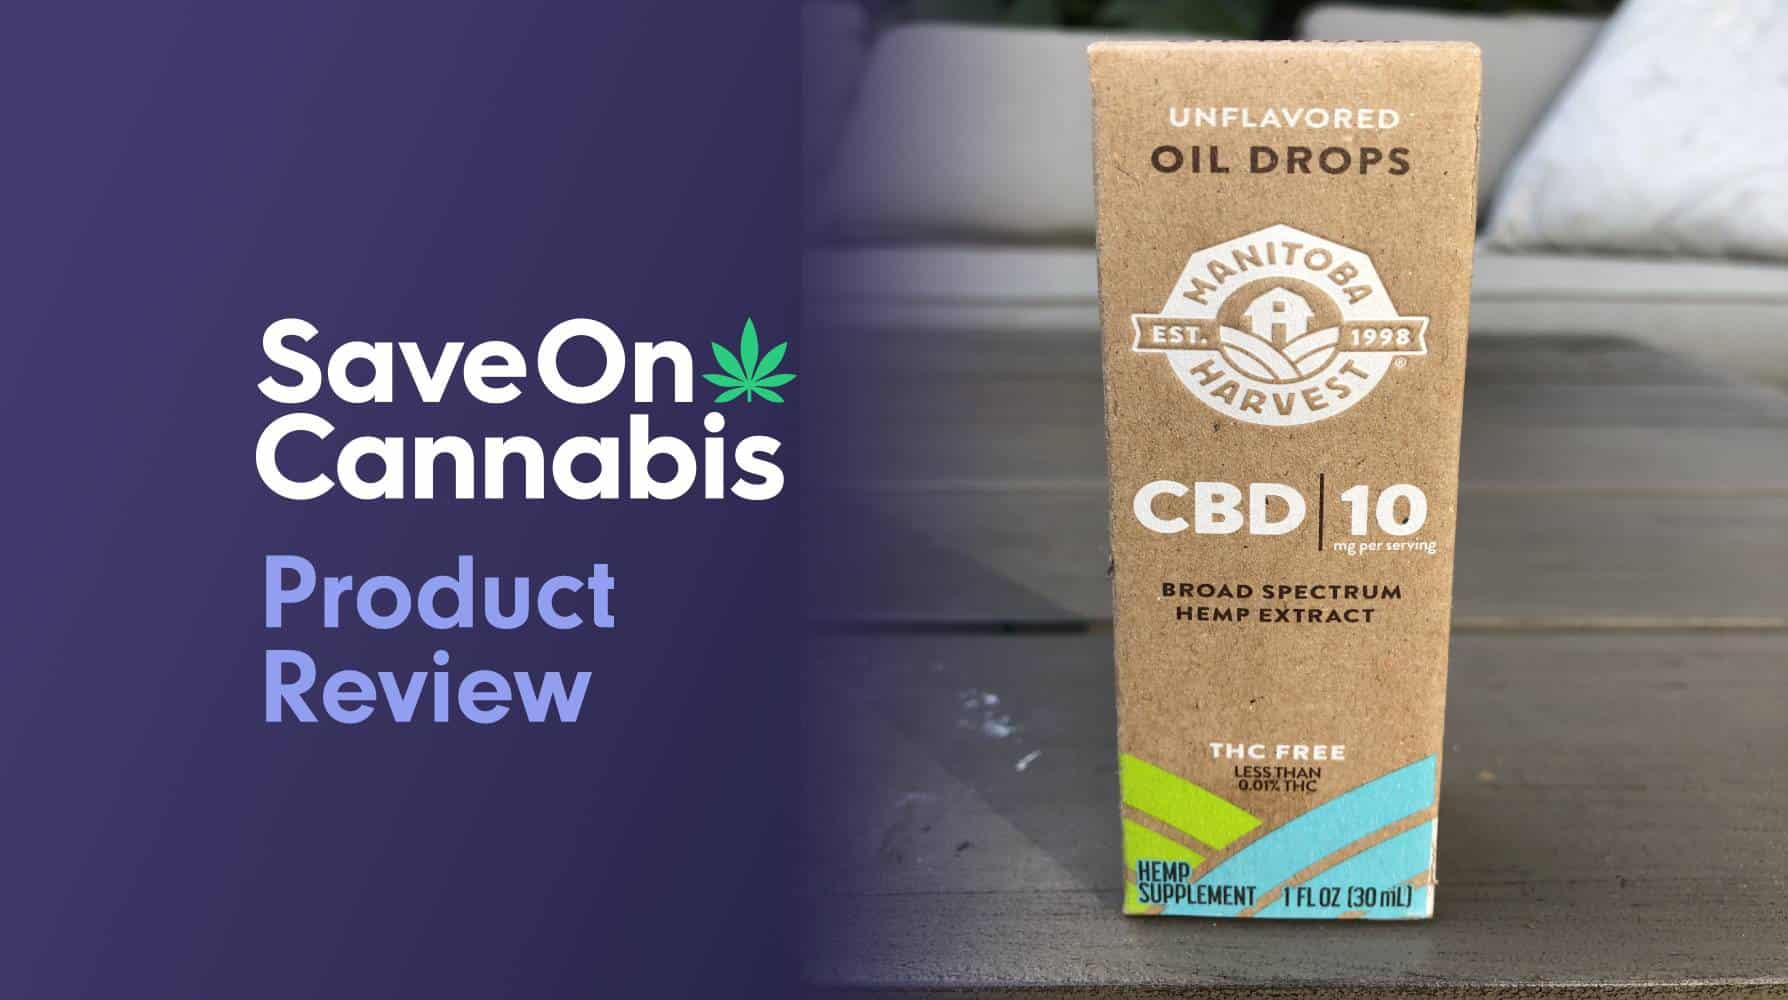 manitoba harvest unflavored cbd oil drops 300 mg save on cannabis website